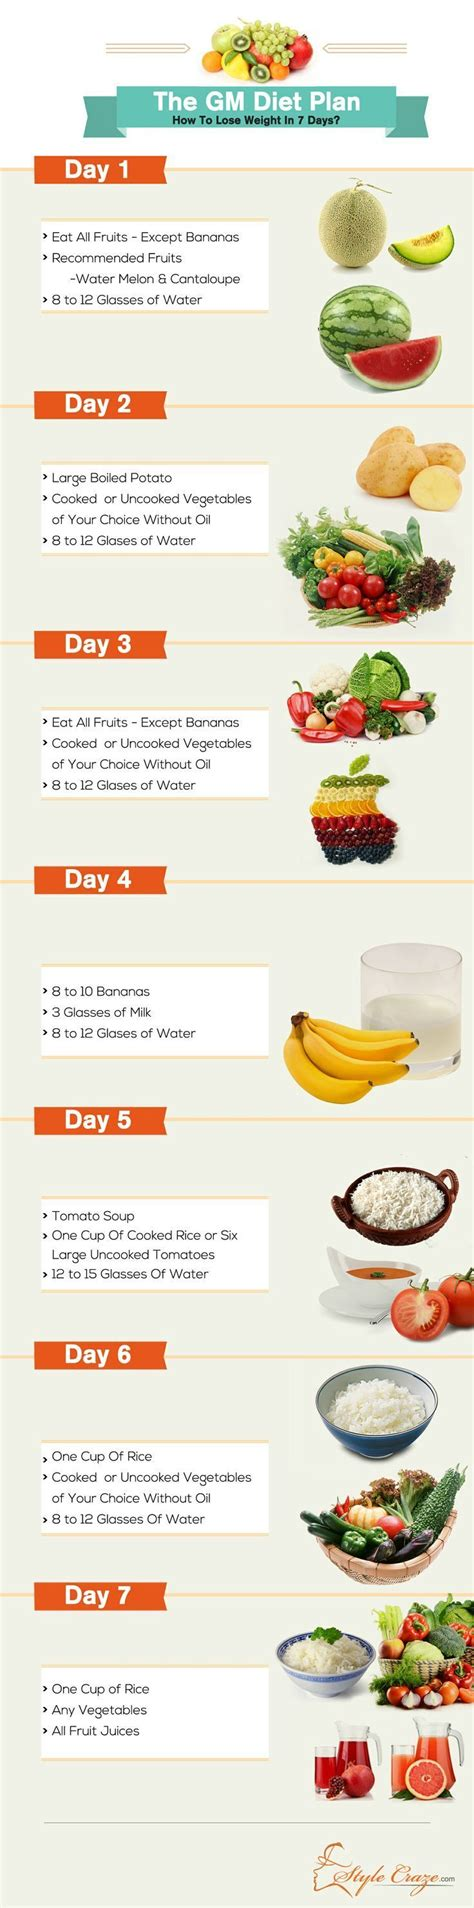 Gm Detox Diet Results by The Gm Diet Plan How To Lose Weight In Just 7 Days